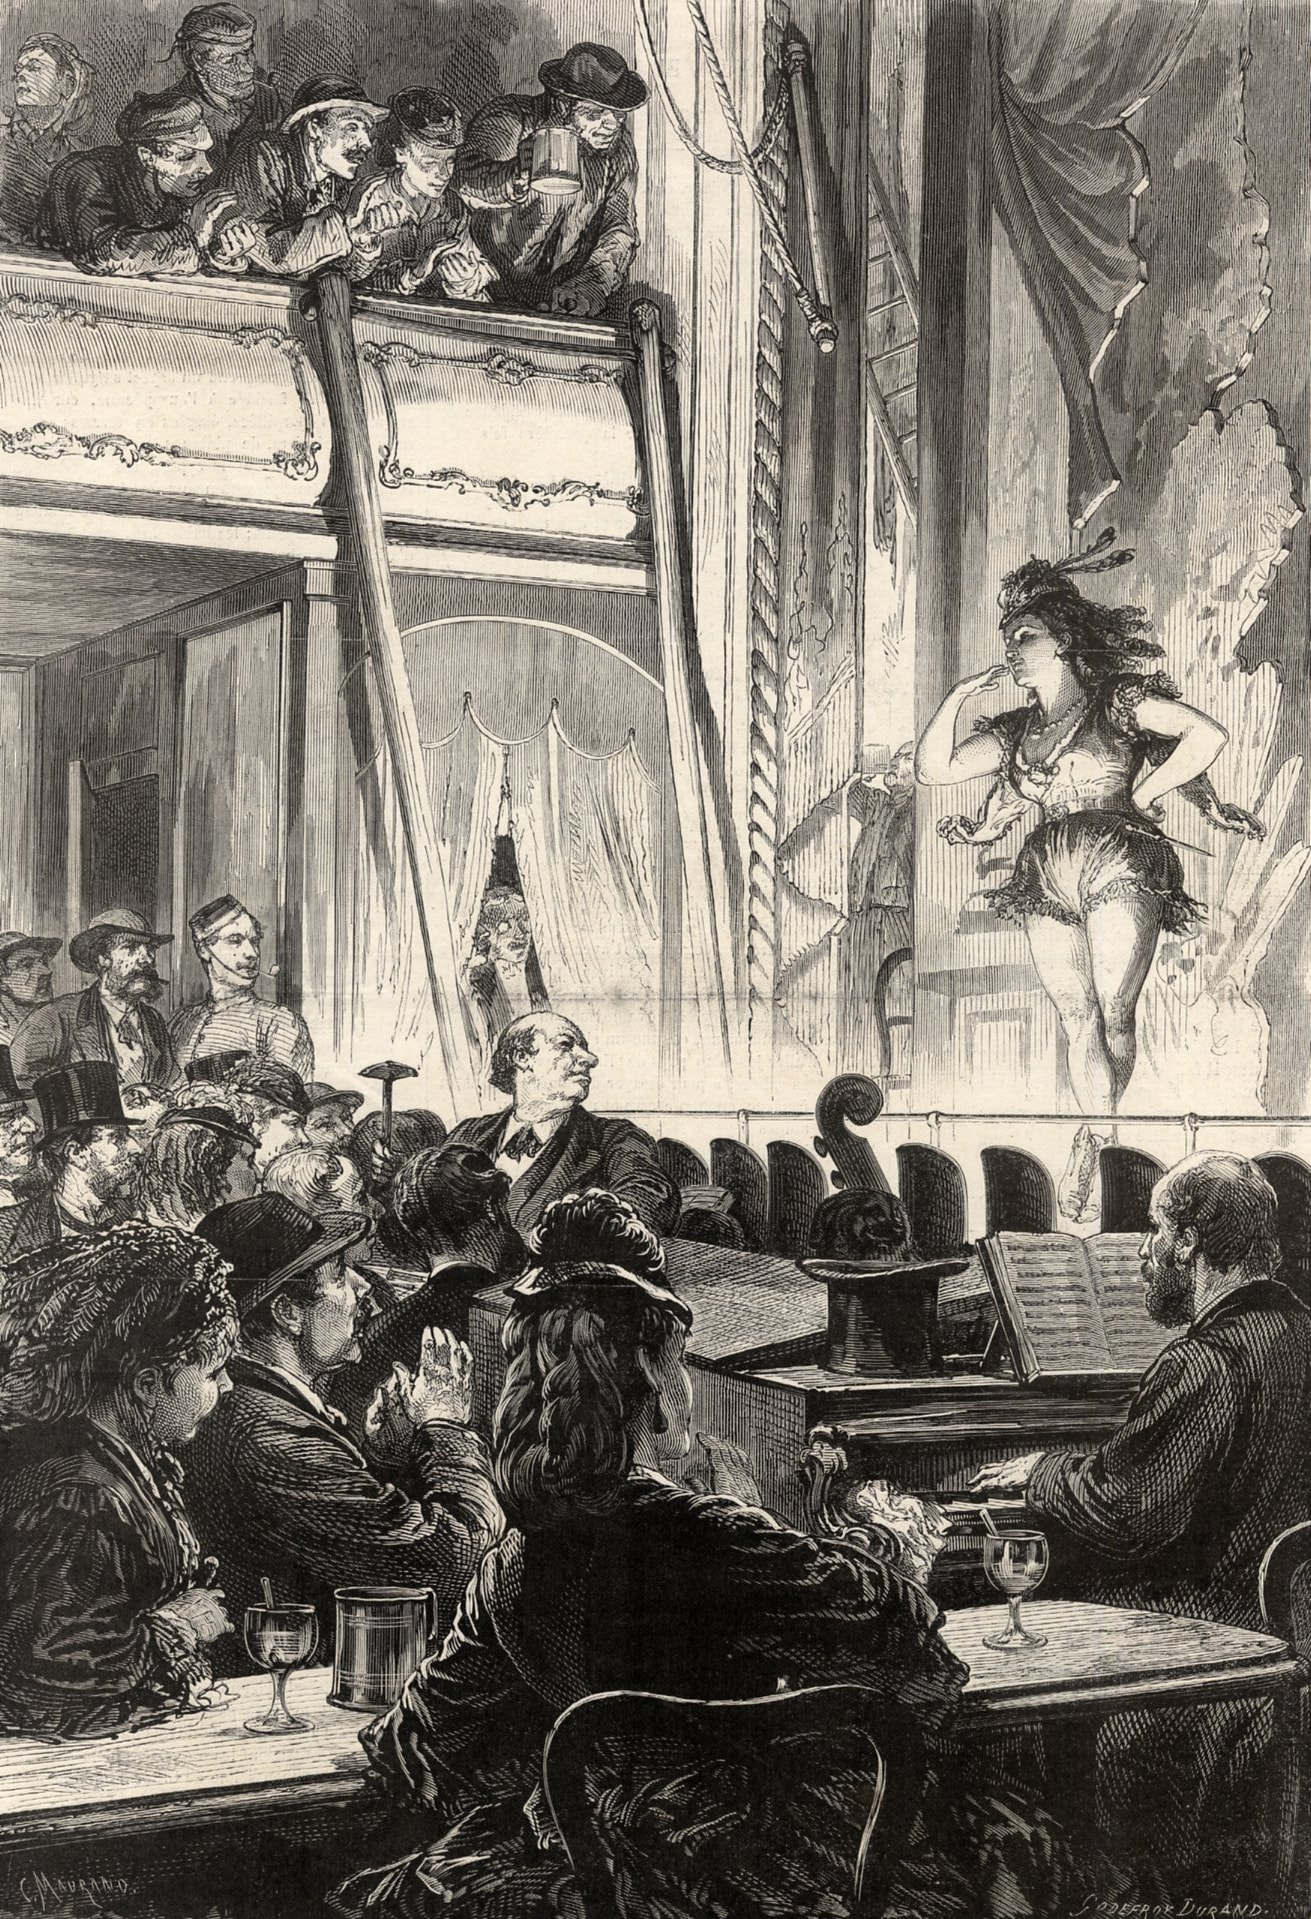 A drawing showing a soman on stage wearing shorts and a sleeveless top .  Men are leaning over from the balcony to watch.  In the foreground men and women watch the performance and a piano player accompanies the woman on stage.